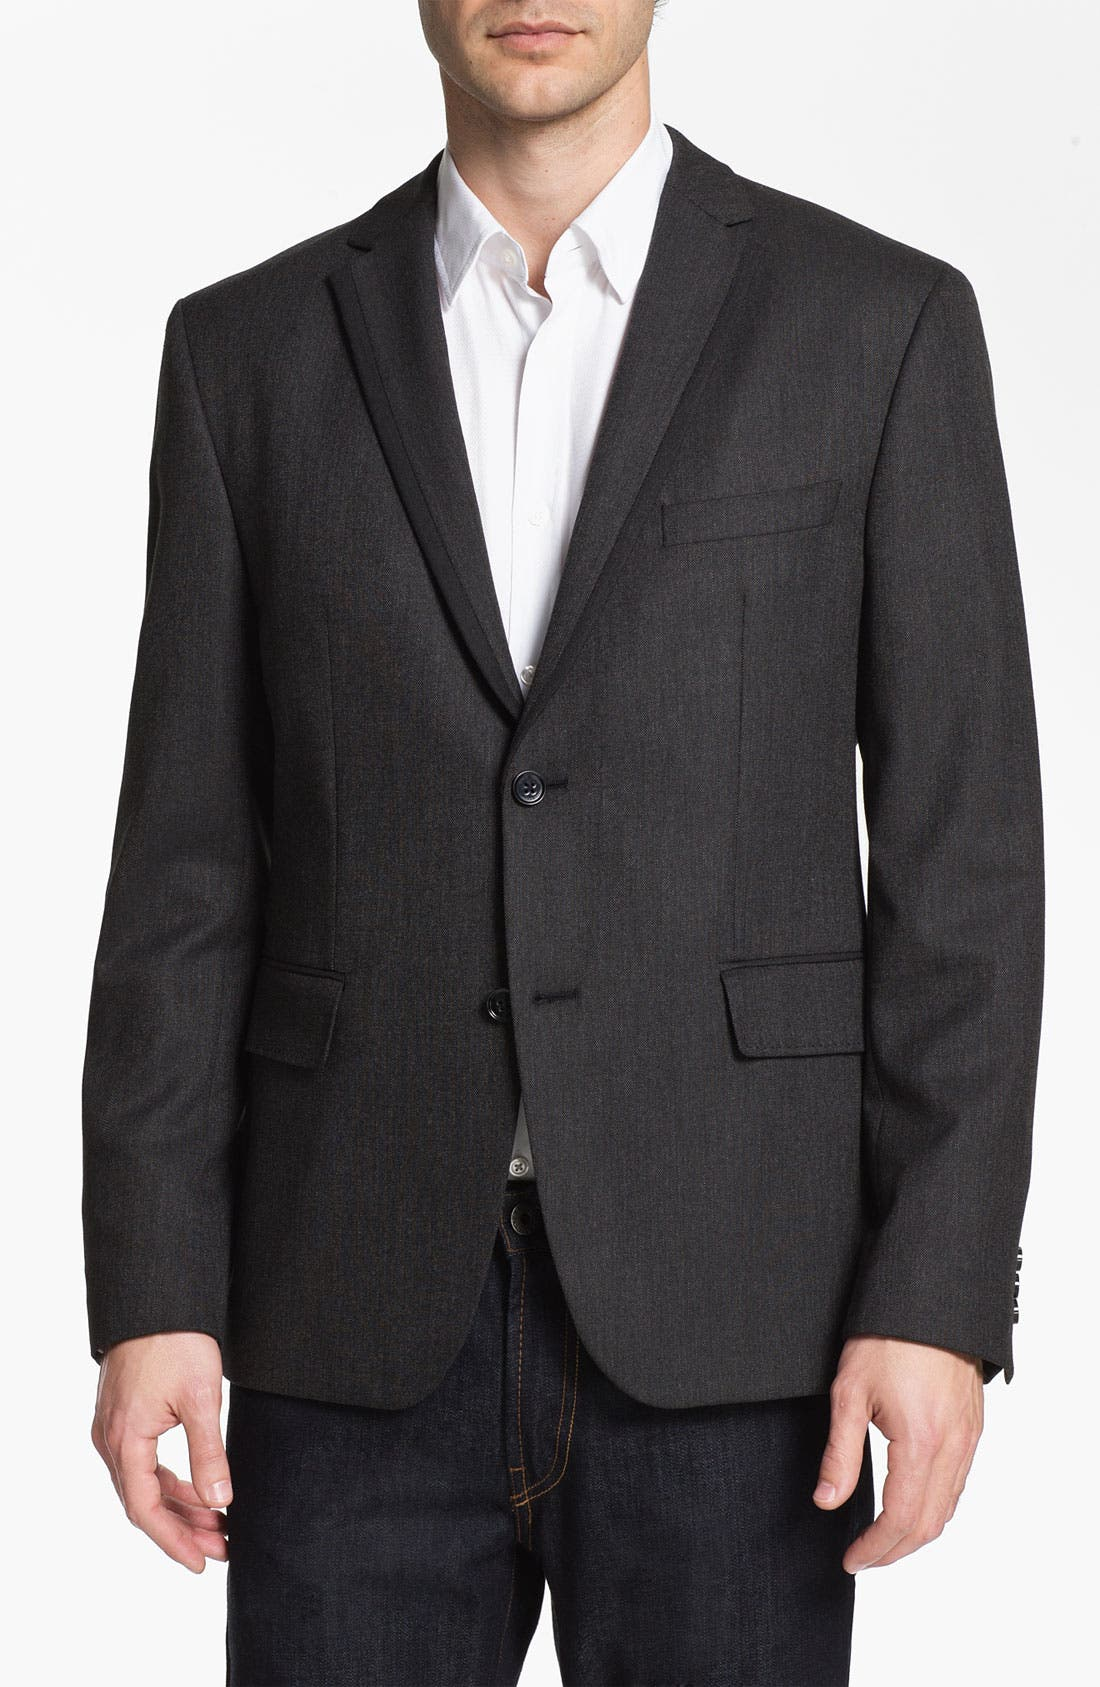 Main Image - BOSS Black 'Coastes' Trim Fit Blazer